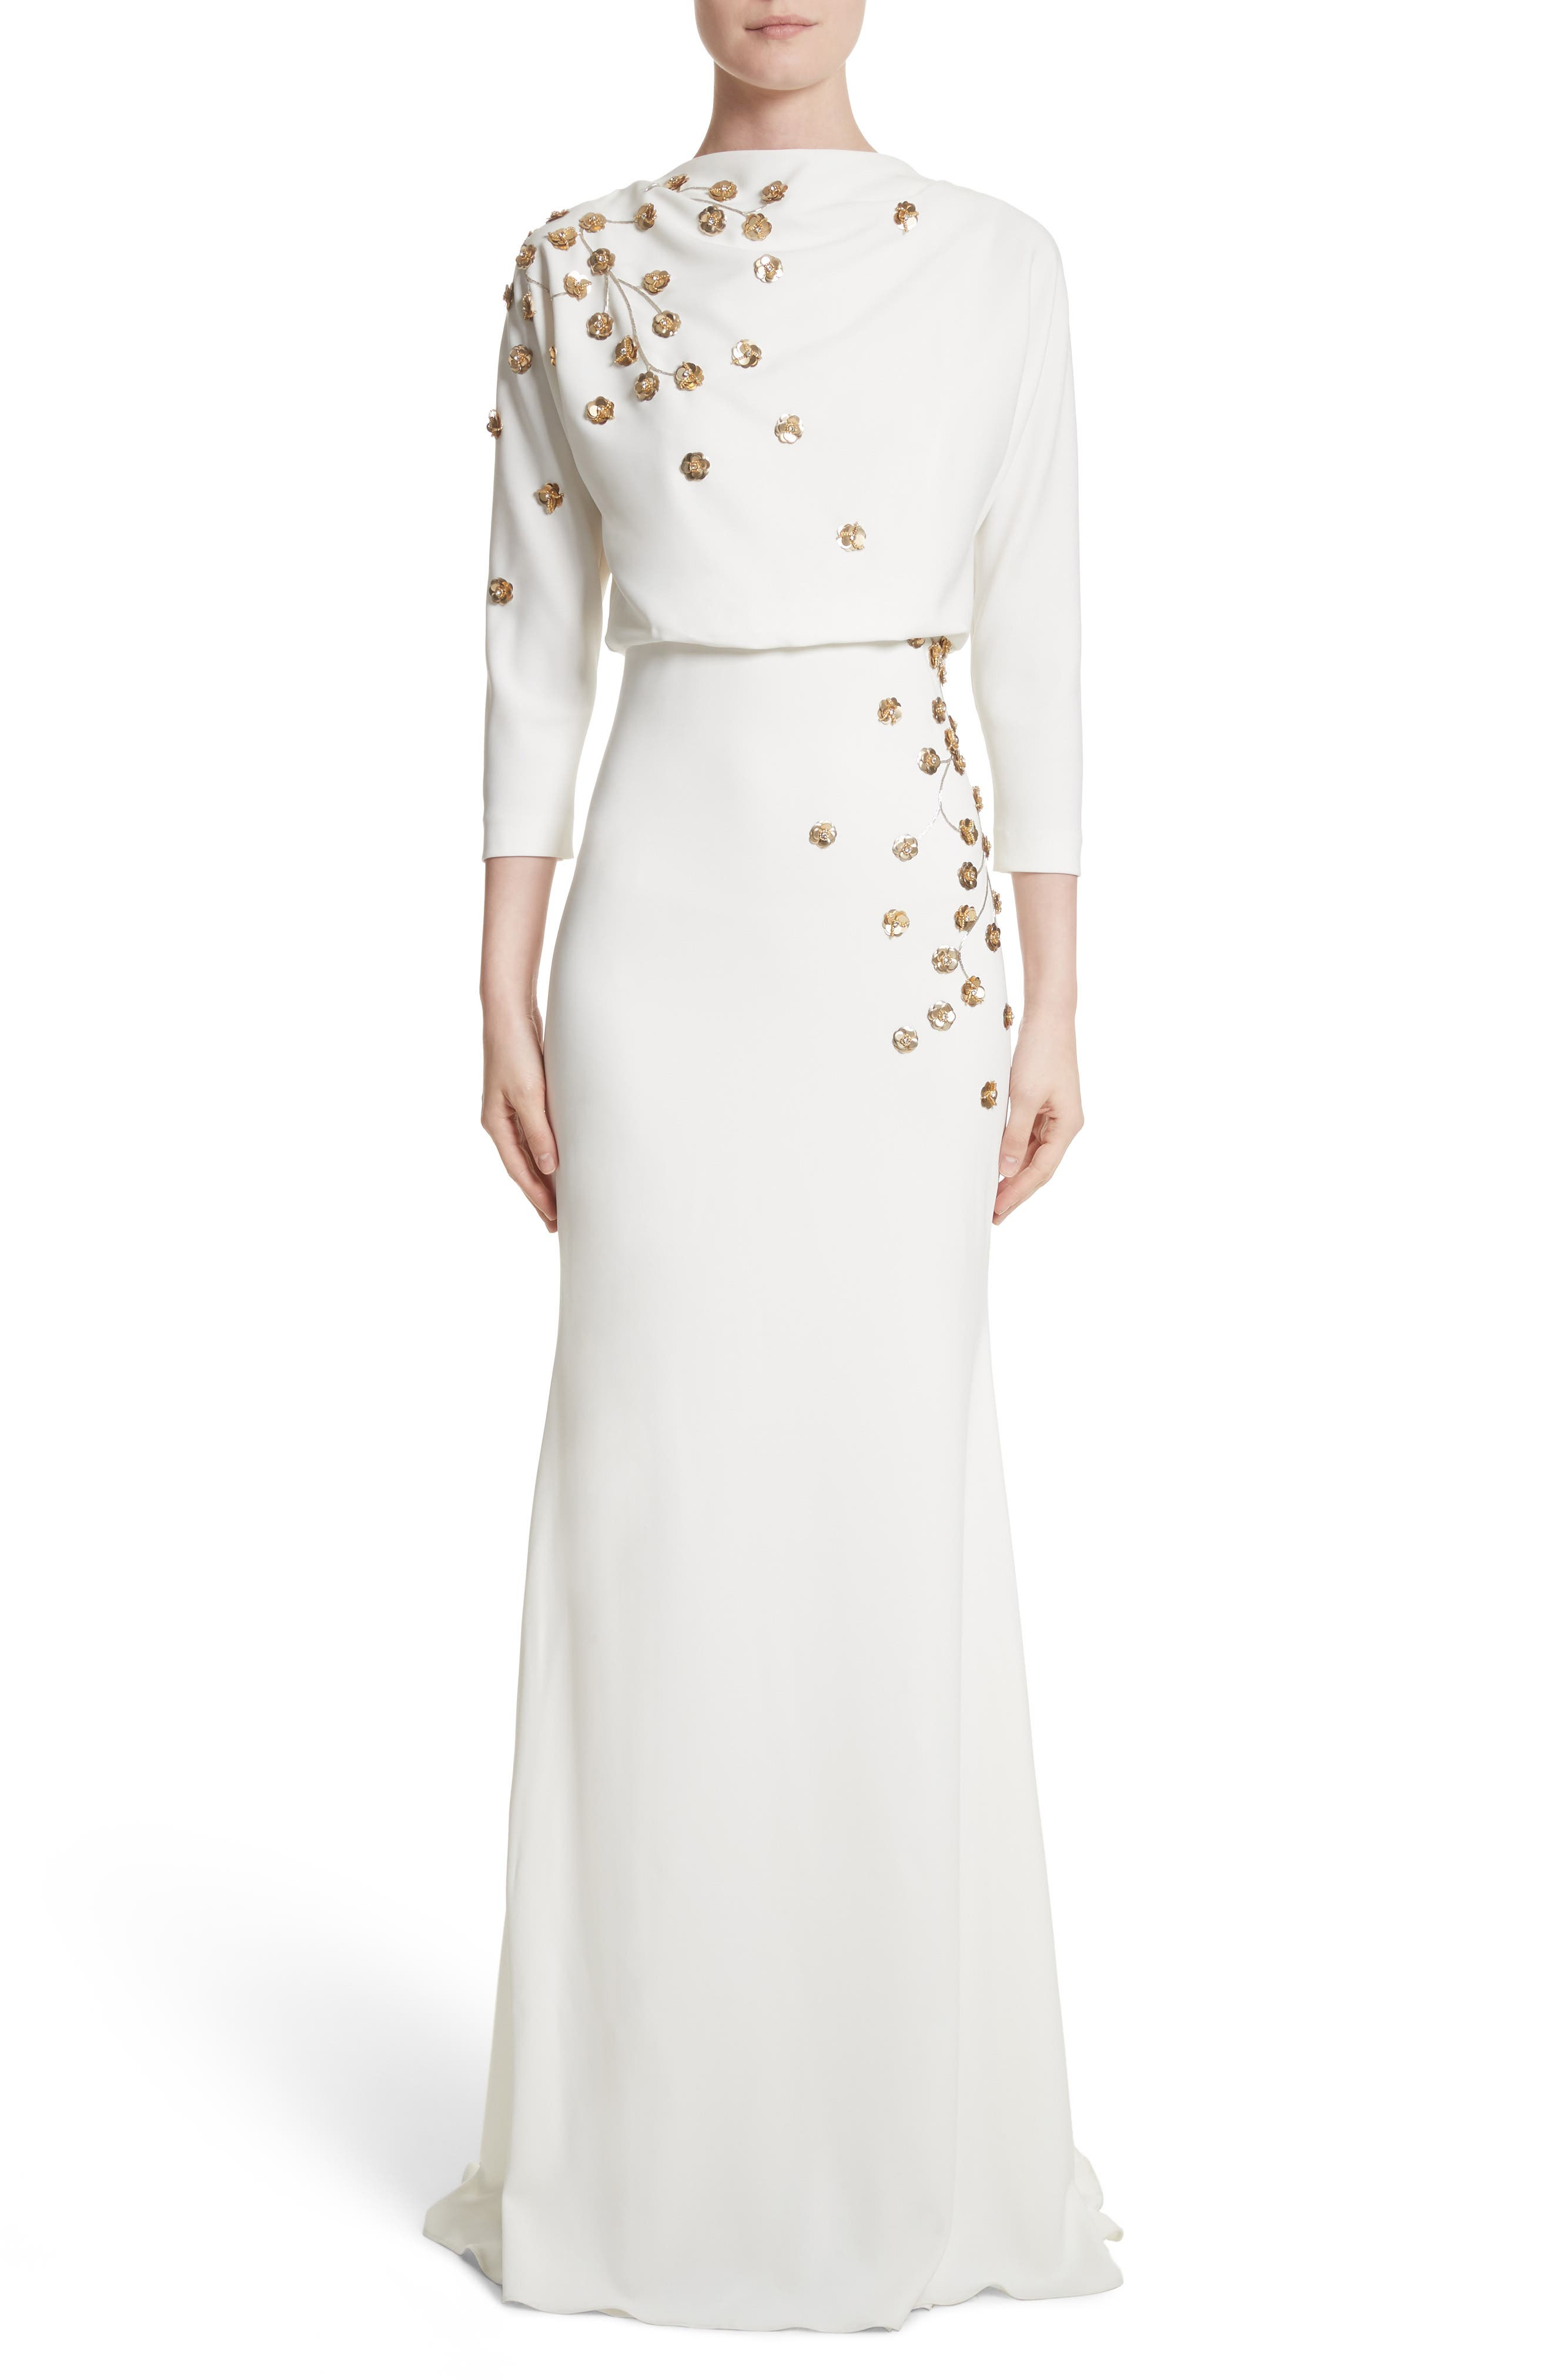 Badgley Mischka Couture Floral Embellished Crepe Gown,                         Main,                         color, 900